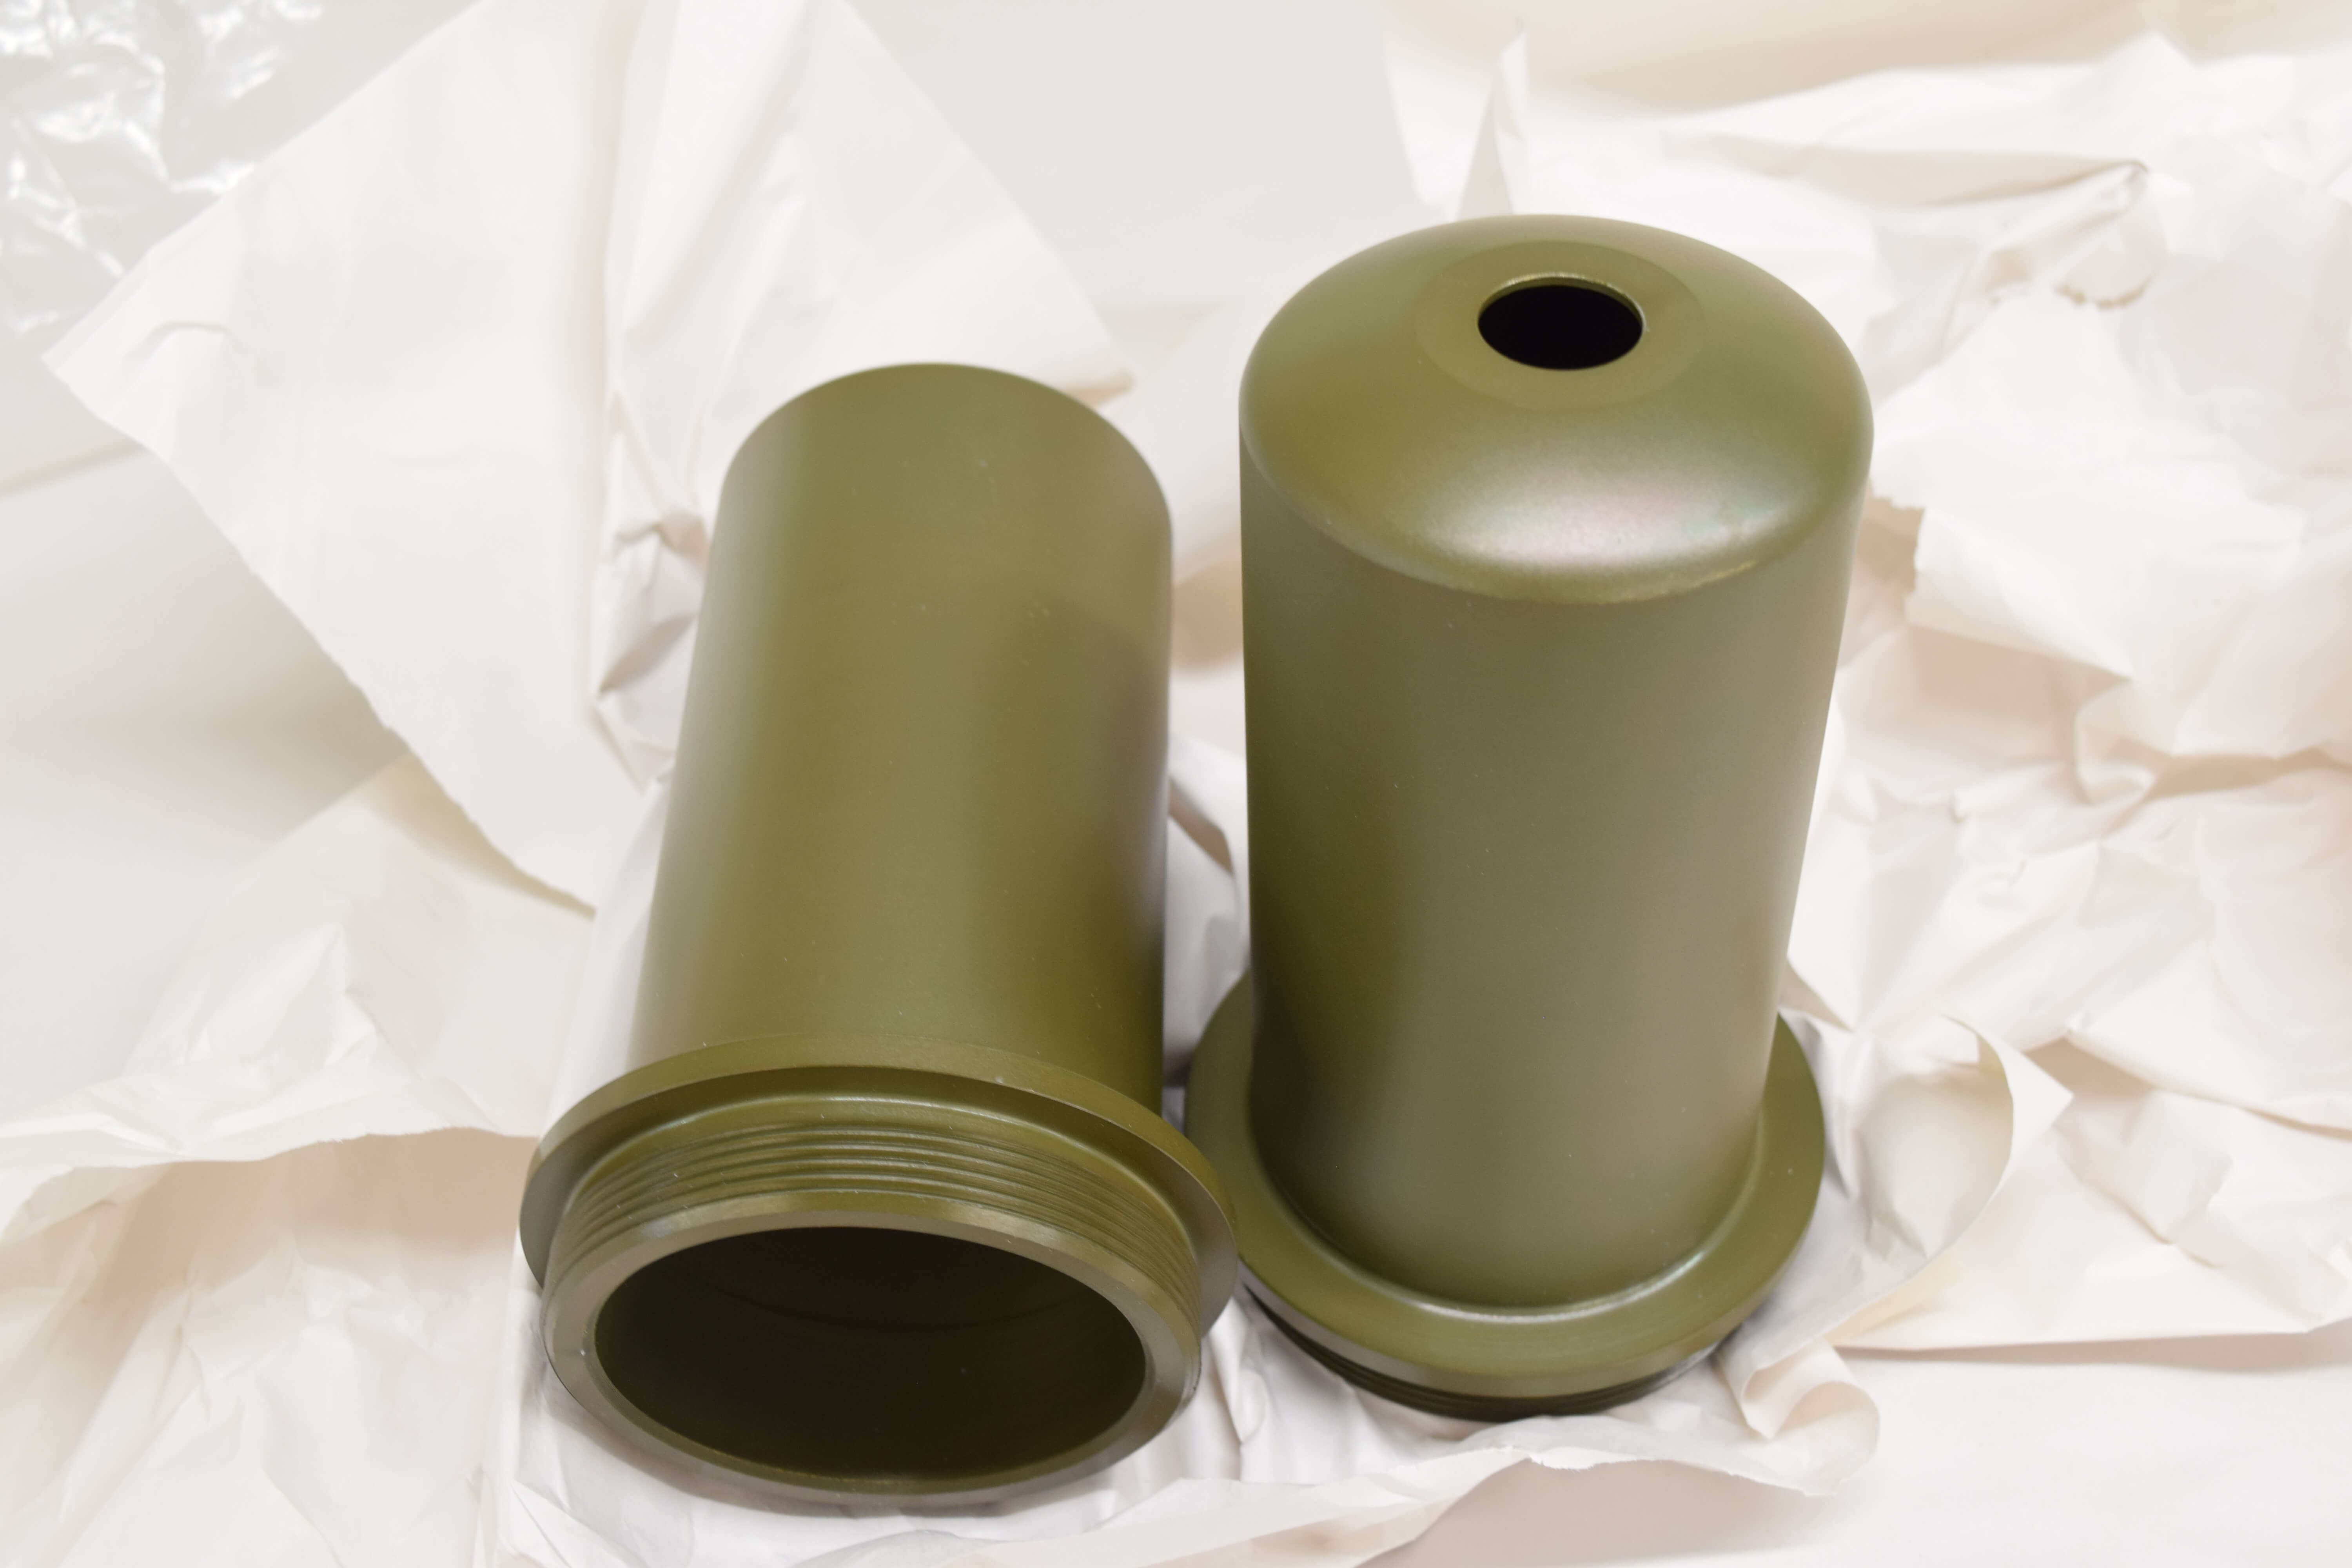 Olive Drab Zinc Plating - Olive Drab Green Chromate - Military